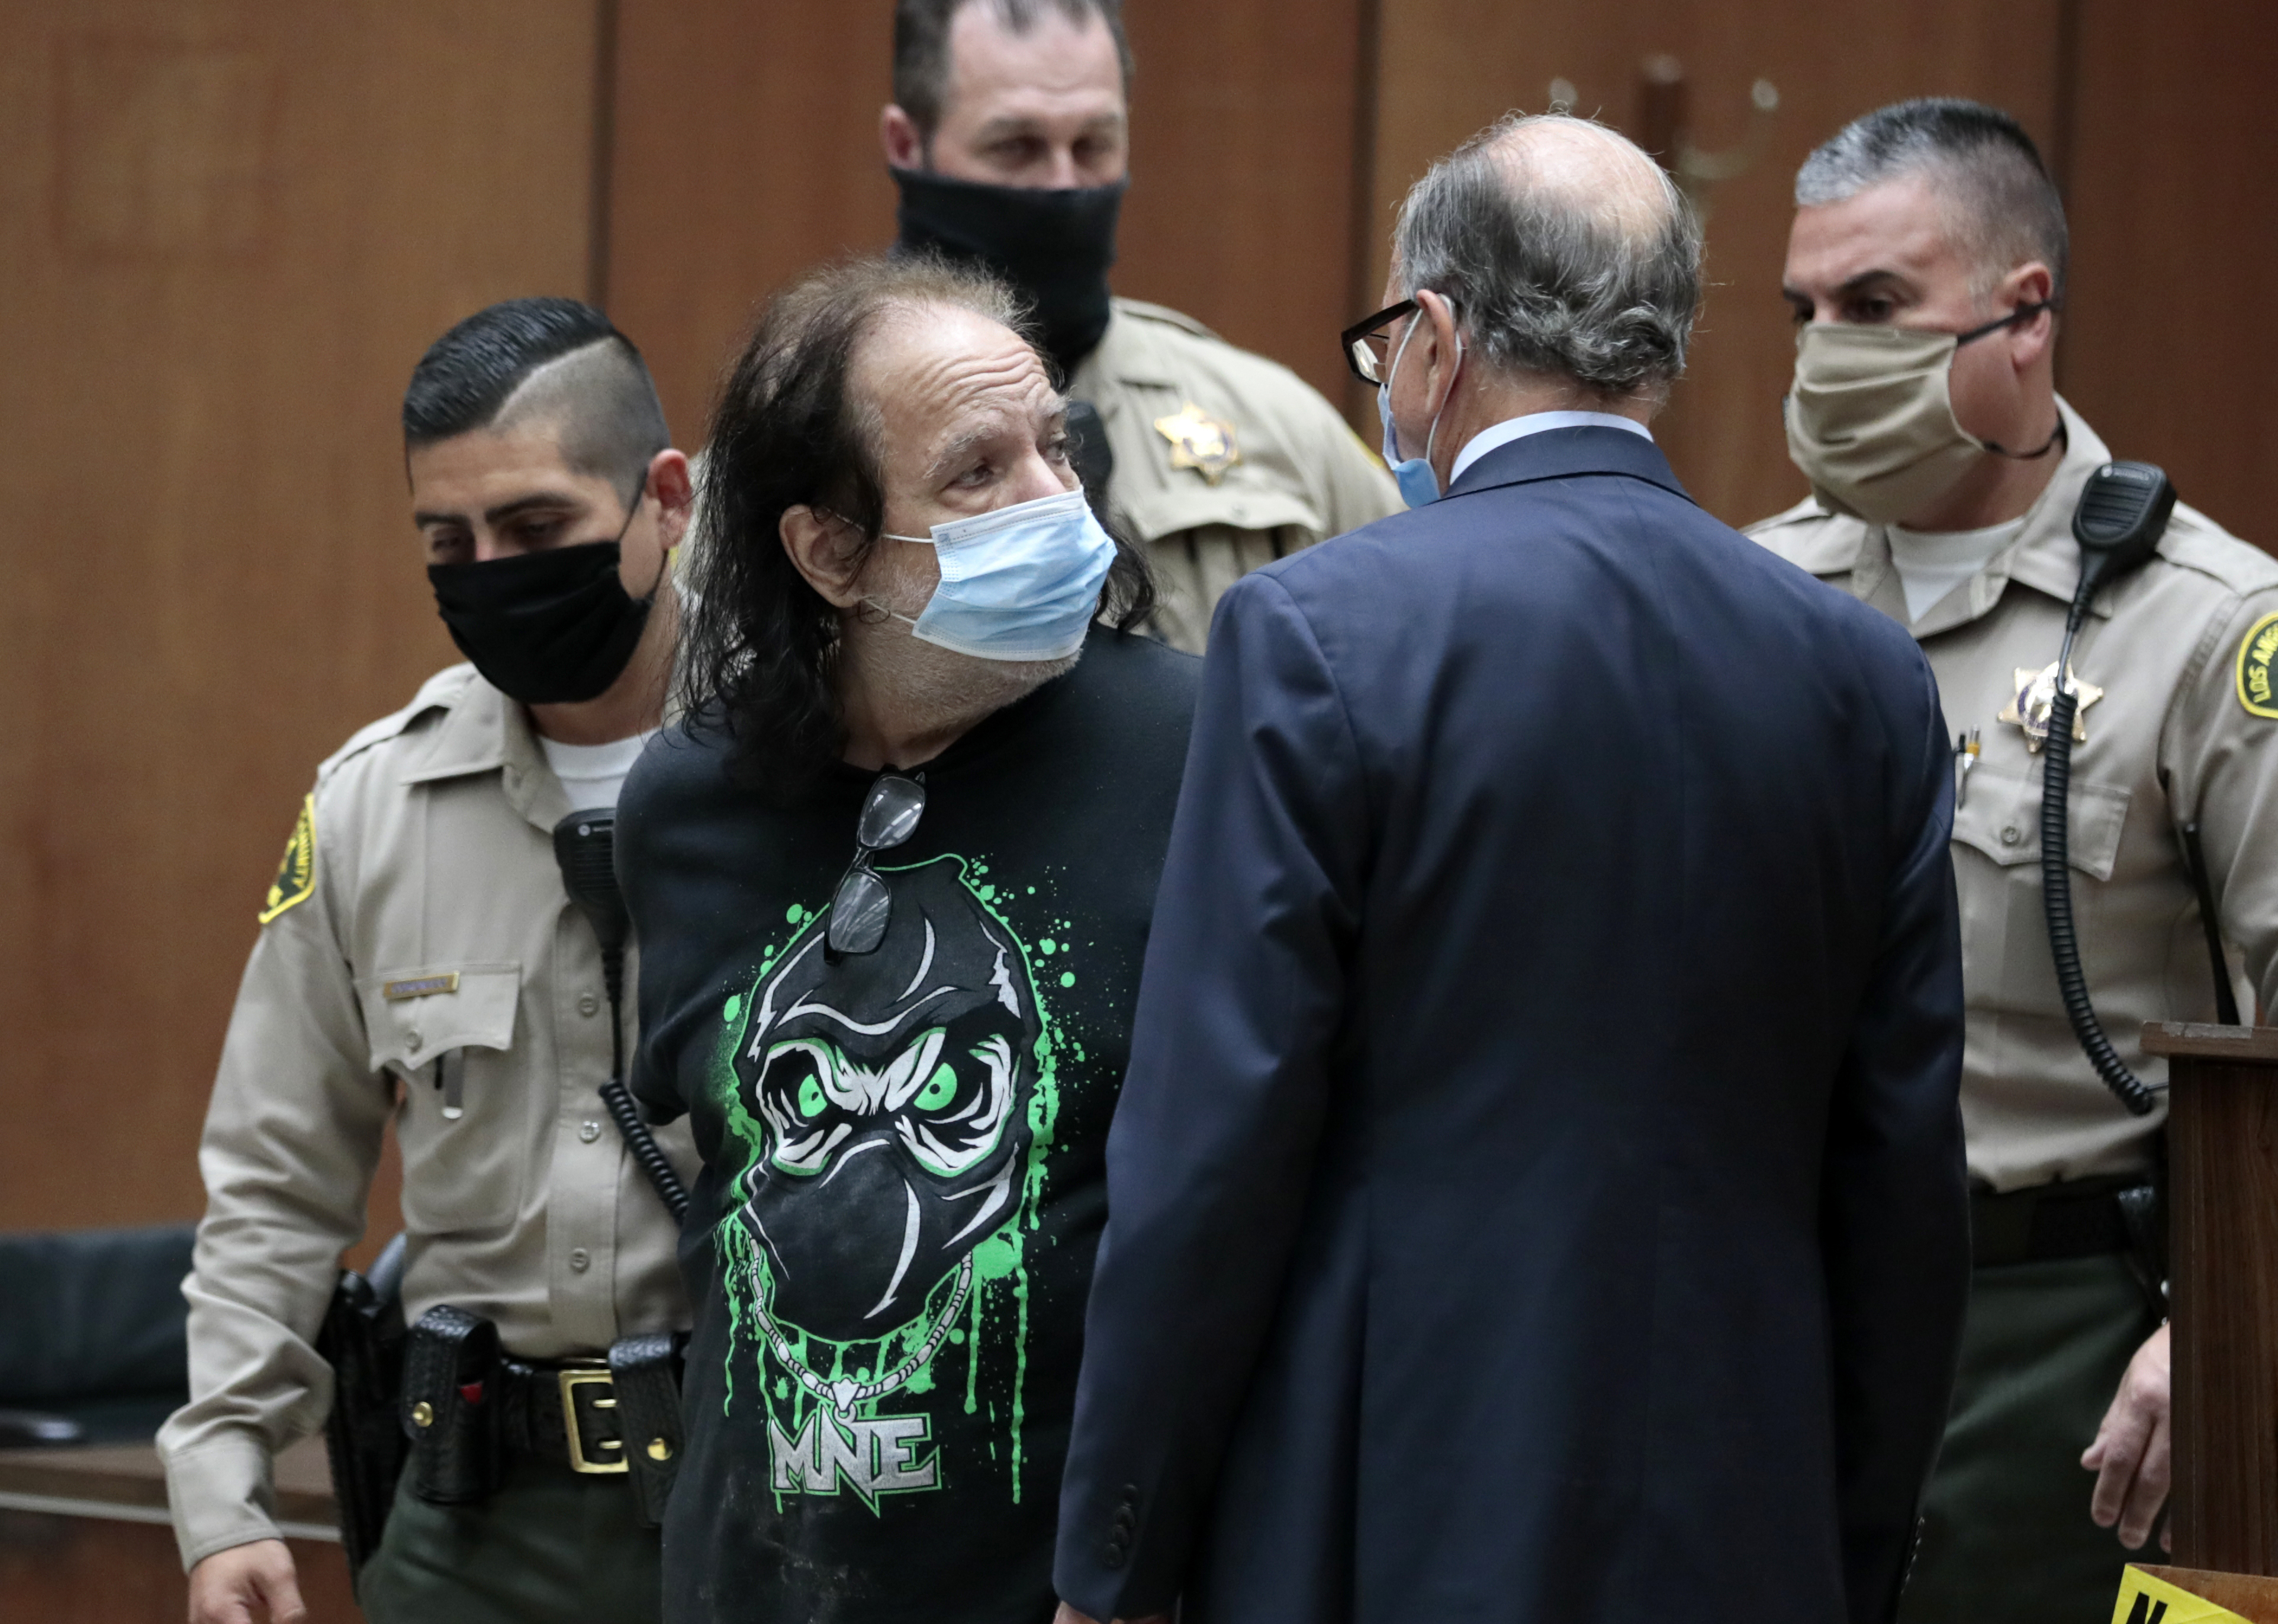 Adult film star Ron Jeremy looks over to his attorney Stuart Goldfarb, right, during an appearance at Los Angeles Superior Court in Los Angeles, Tuesday, June 23, 2020. Los Angeles County prosecutors say Jeremy has been charged with raping three women and sexually assaulting a fourth. (Robert Gauthier/Los Angeles Times via AP, Pool)